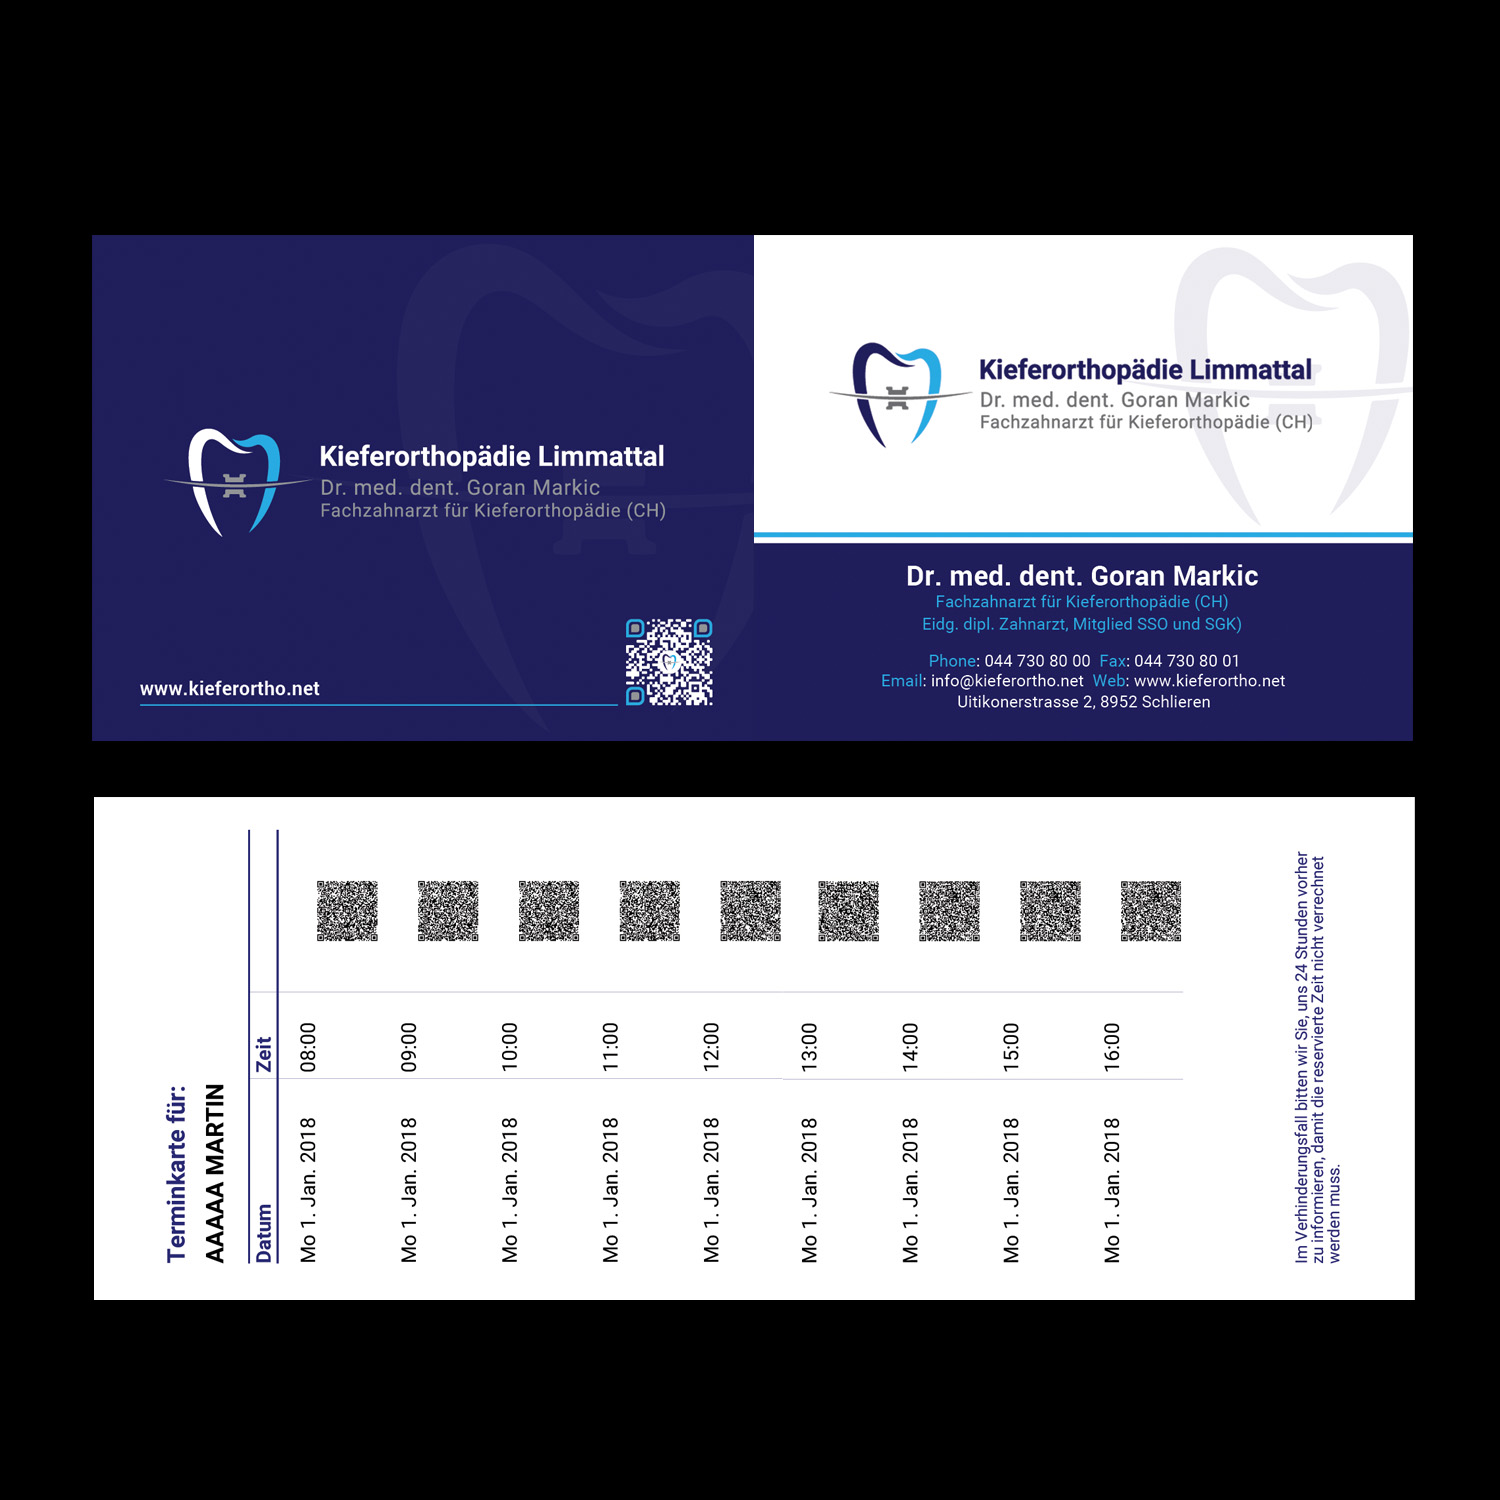 Elegant modern it professional business card design for abimar business card design by sandaruwan for abimar gmbh design 17358493 reheart Image collections